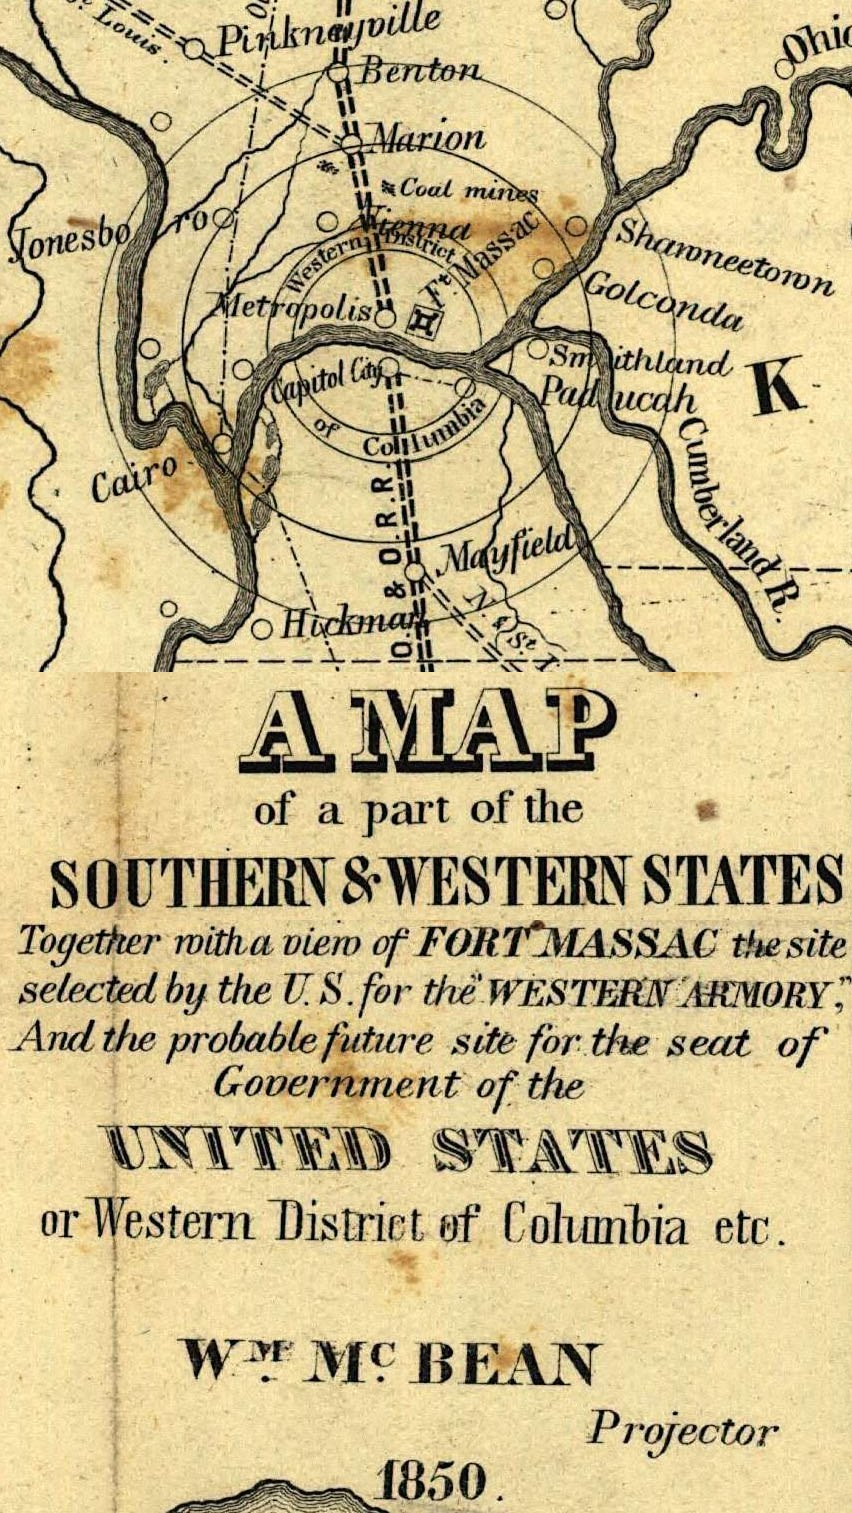 1850 Western District of Columbia